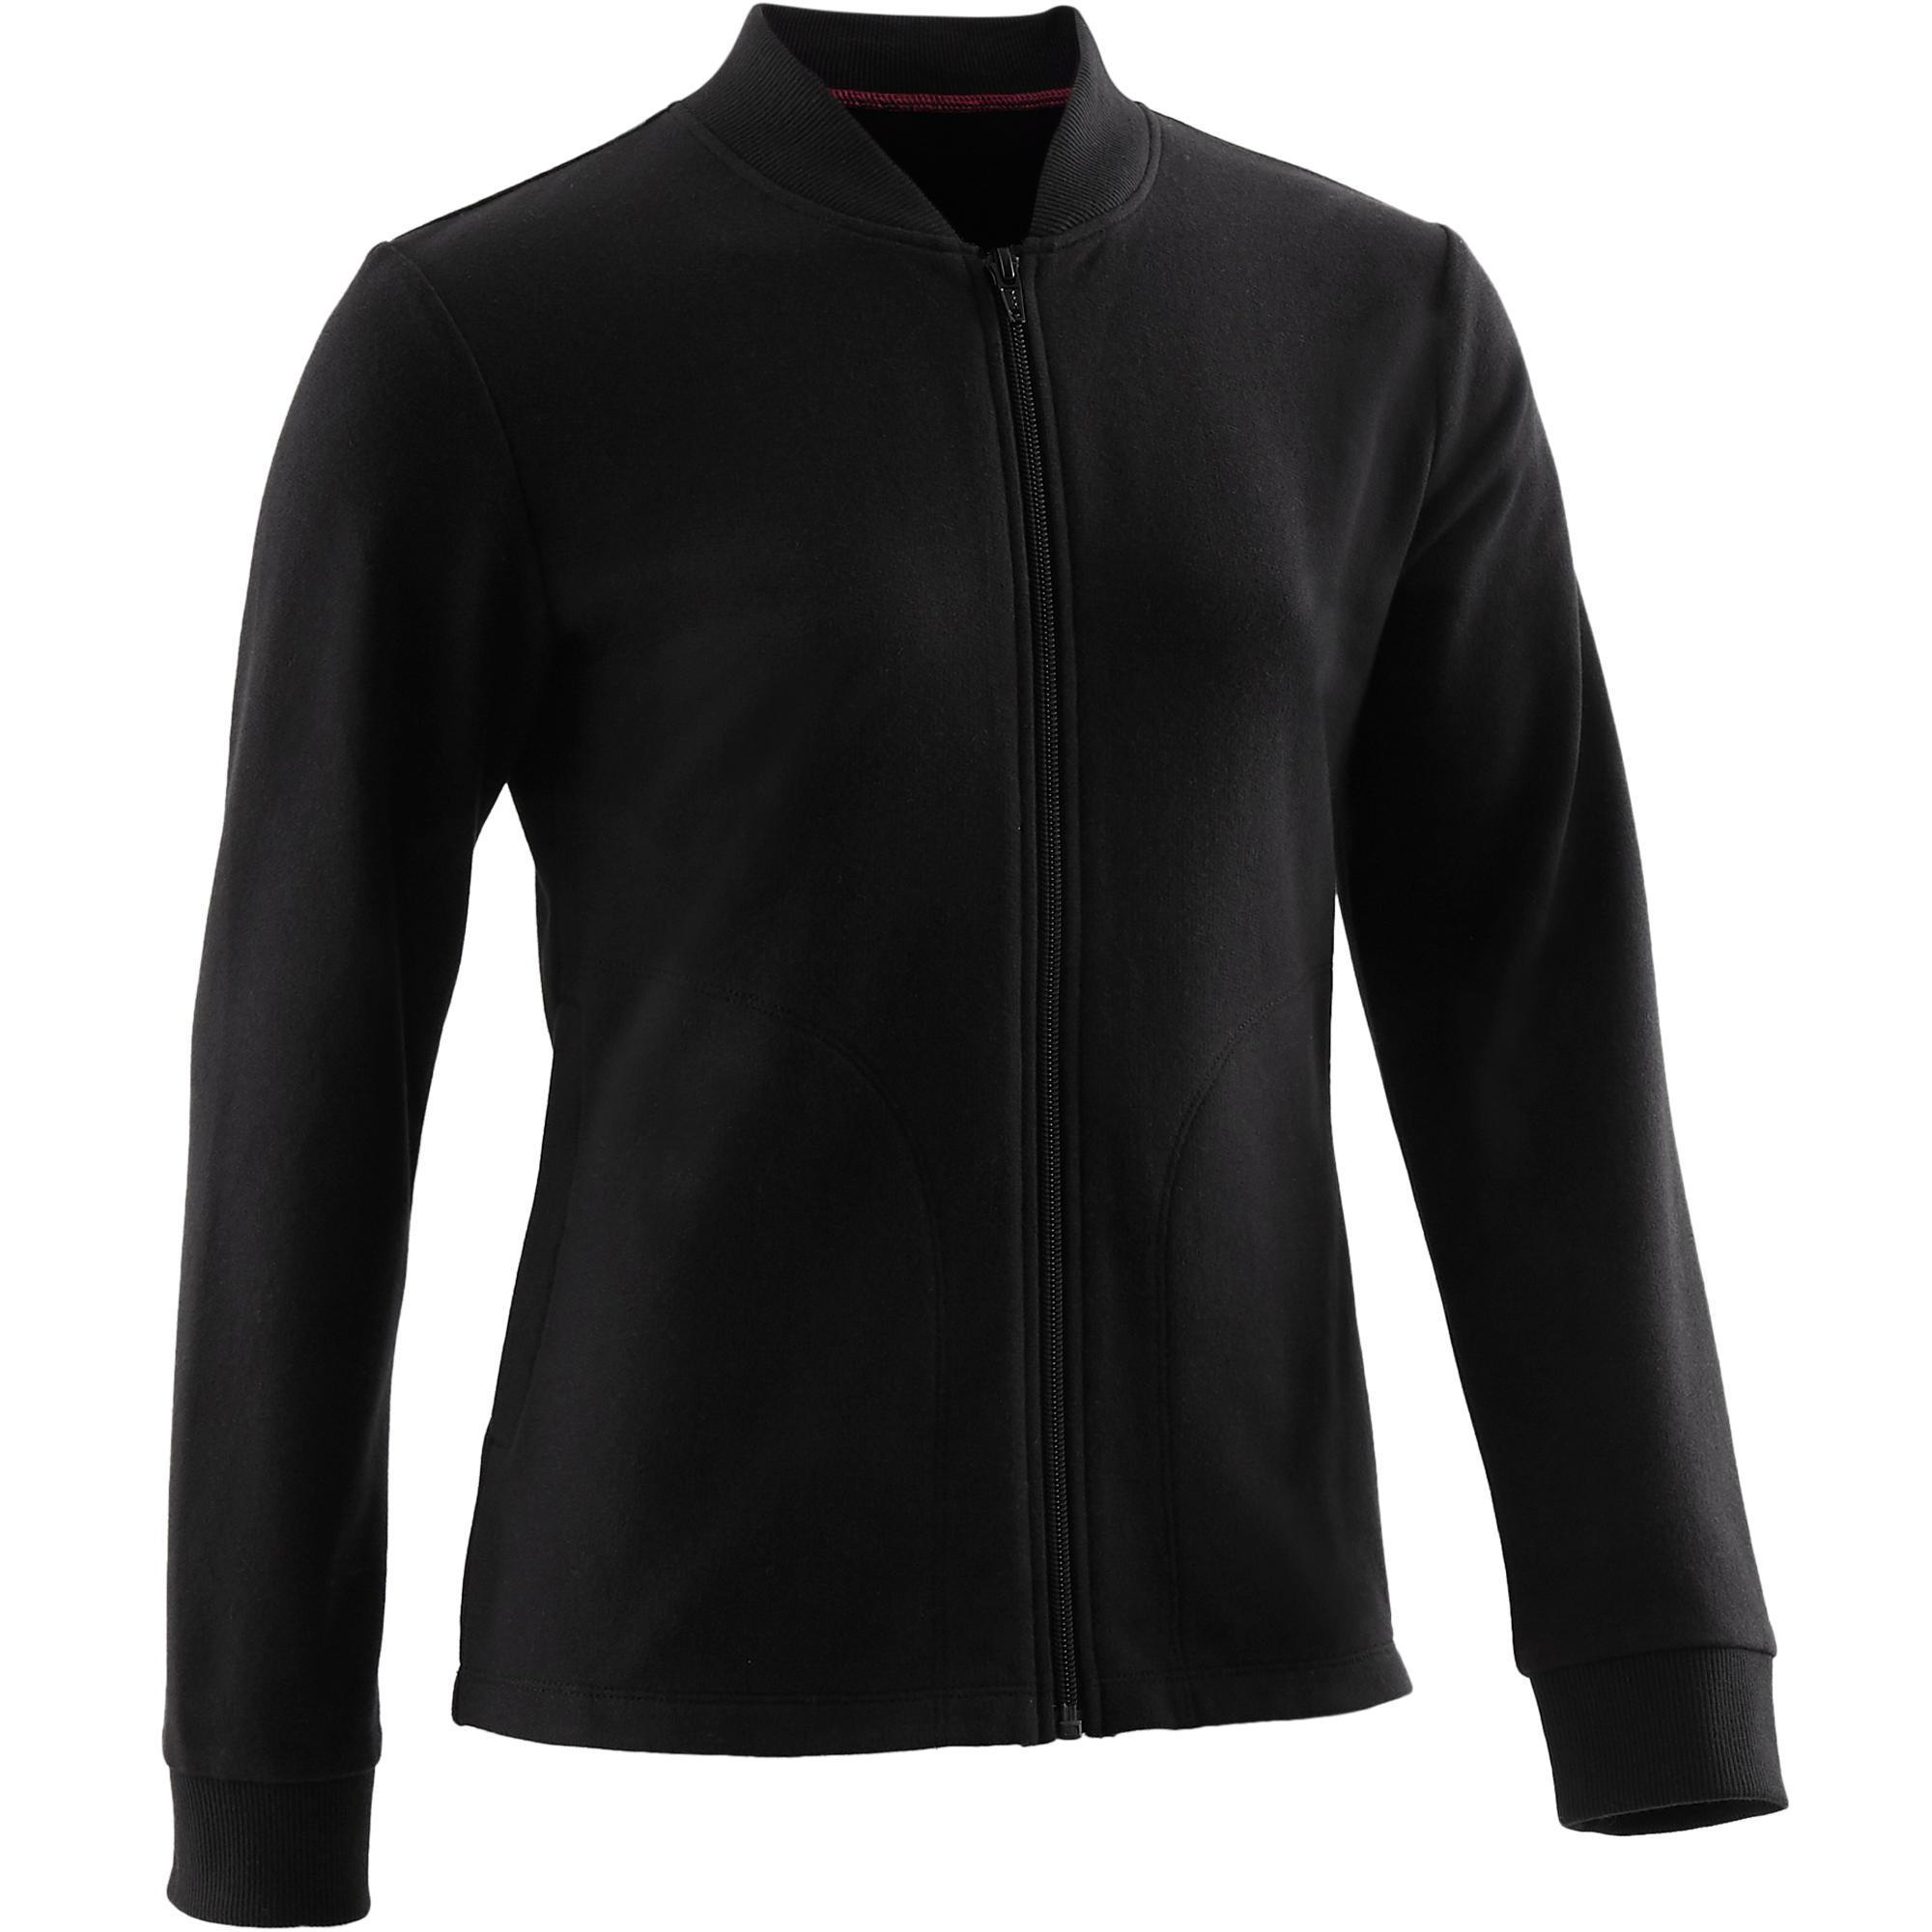 Trainingsjacke 100 Gym Kinder schwarz